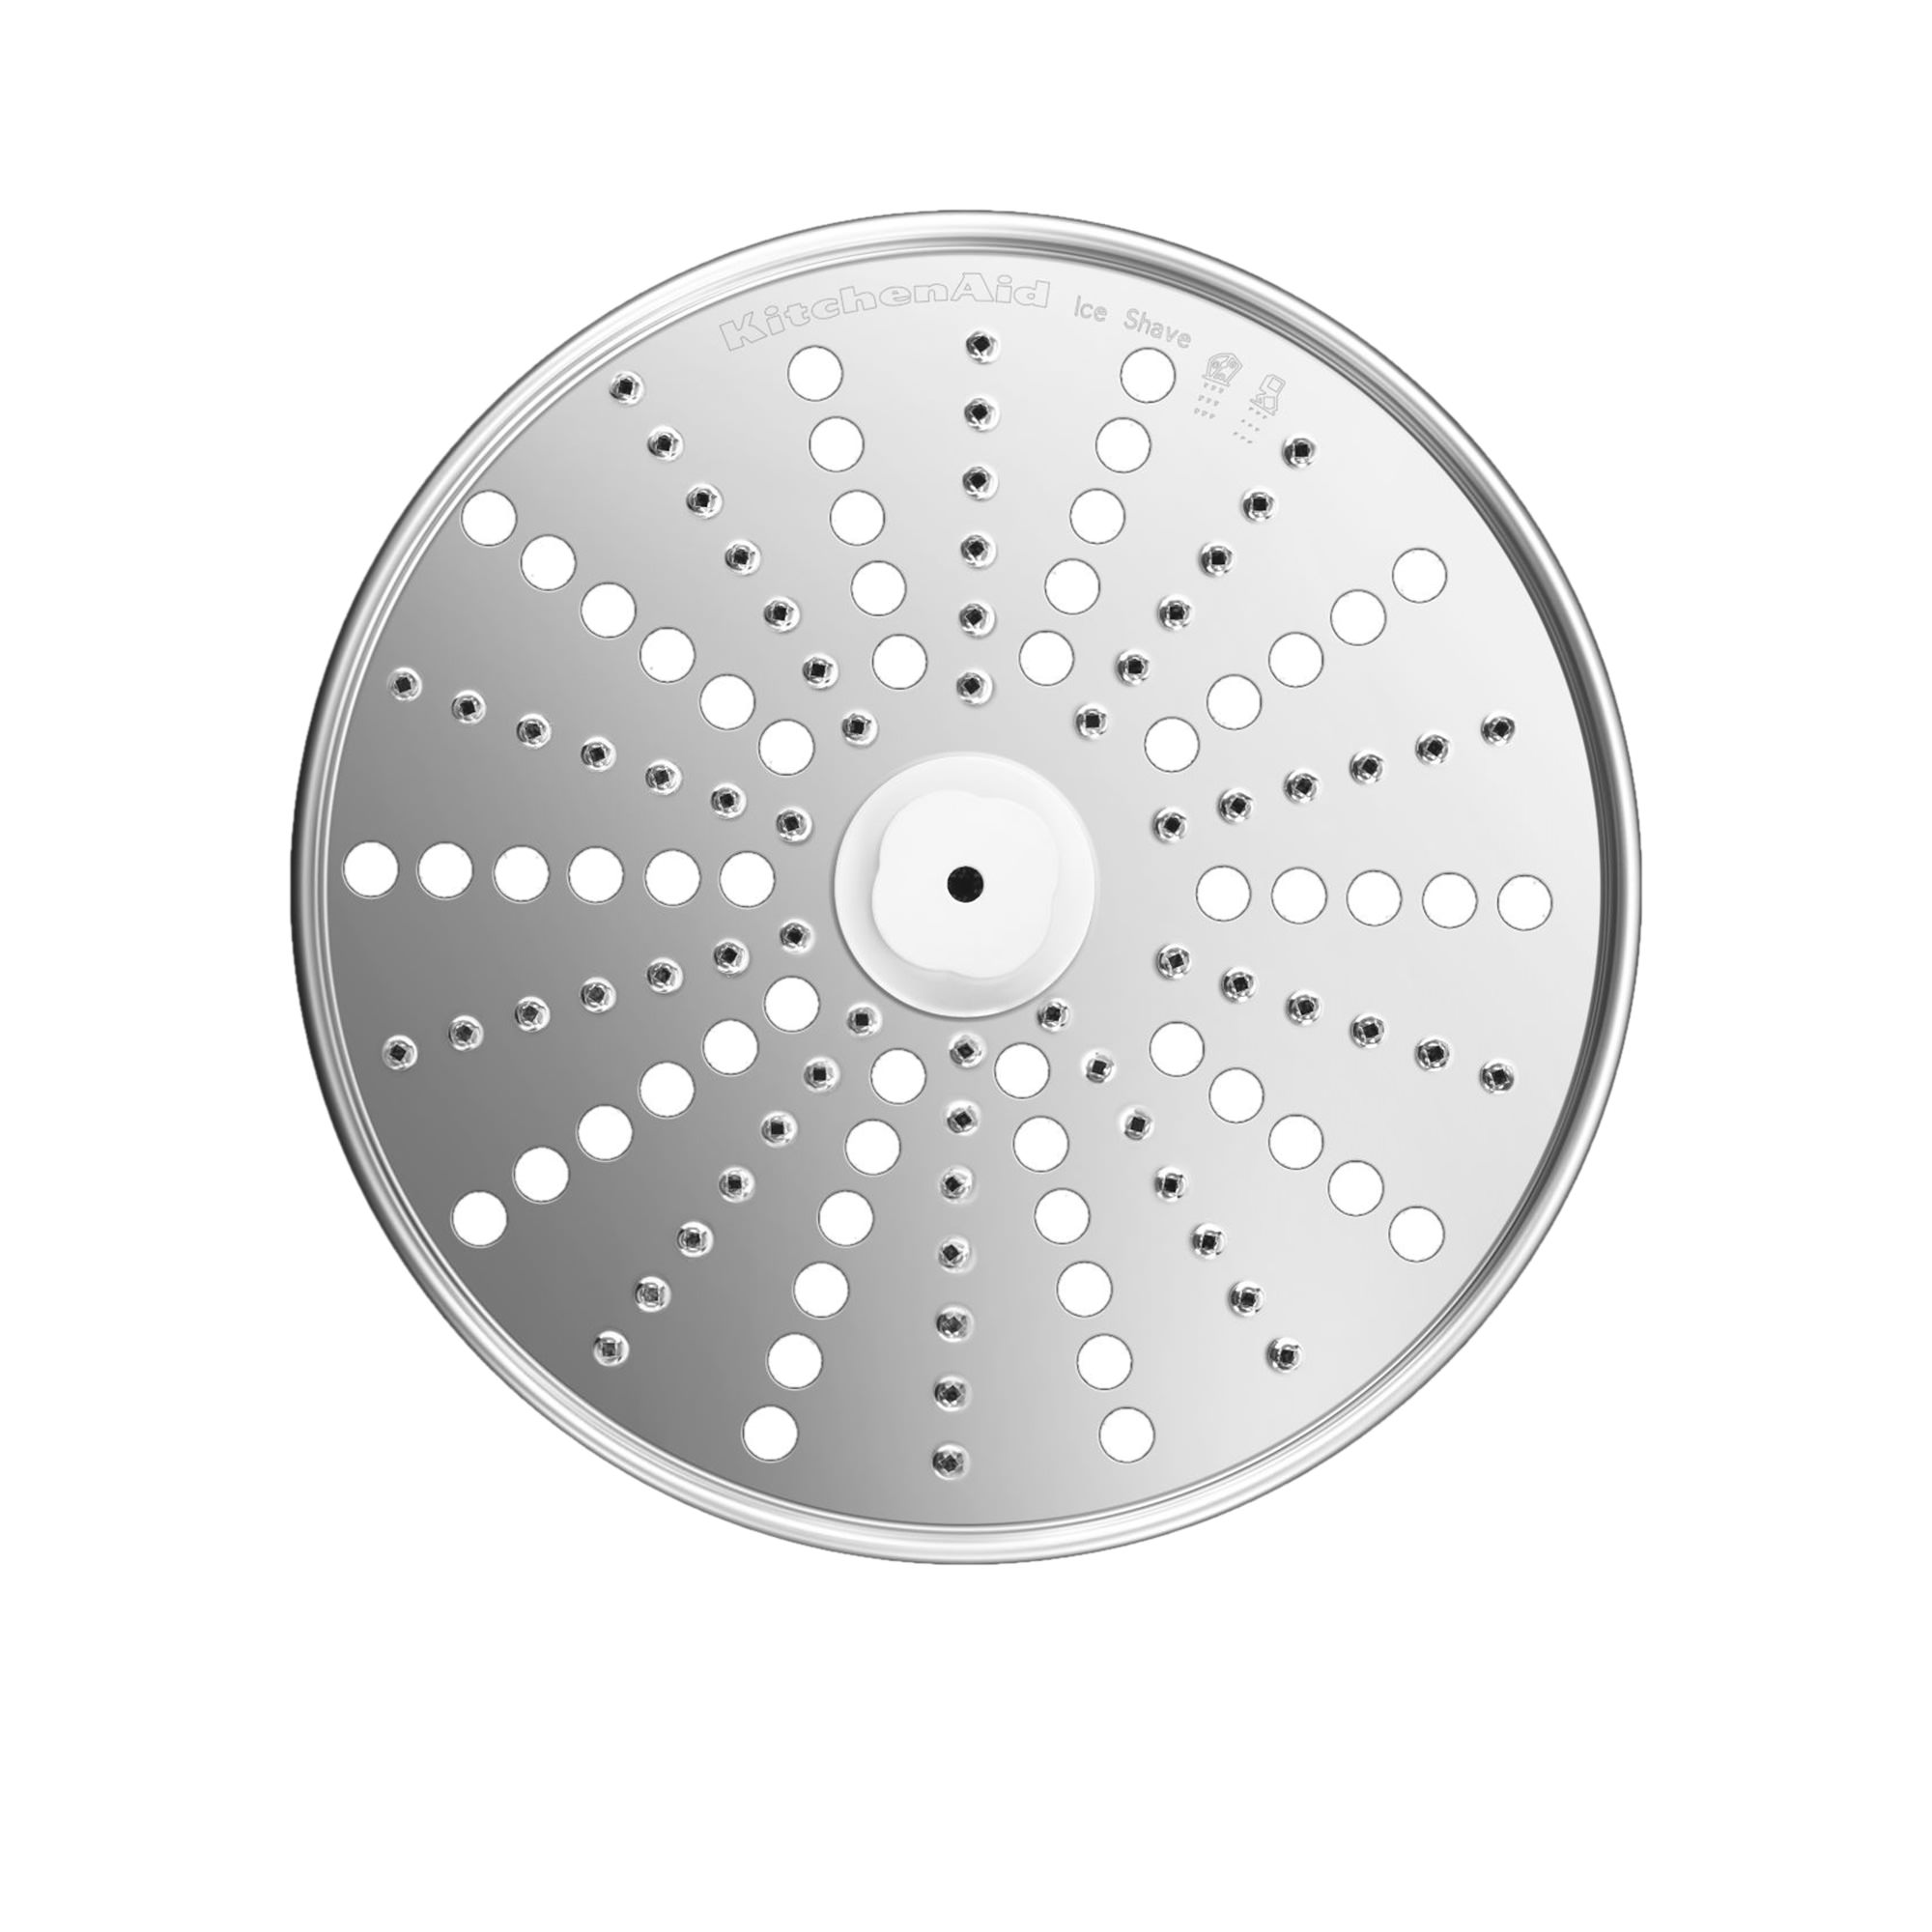 KitchenAid Parmesan Grating Disc for KFP1333 Food Processor